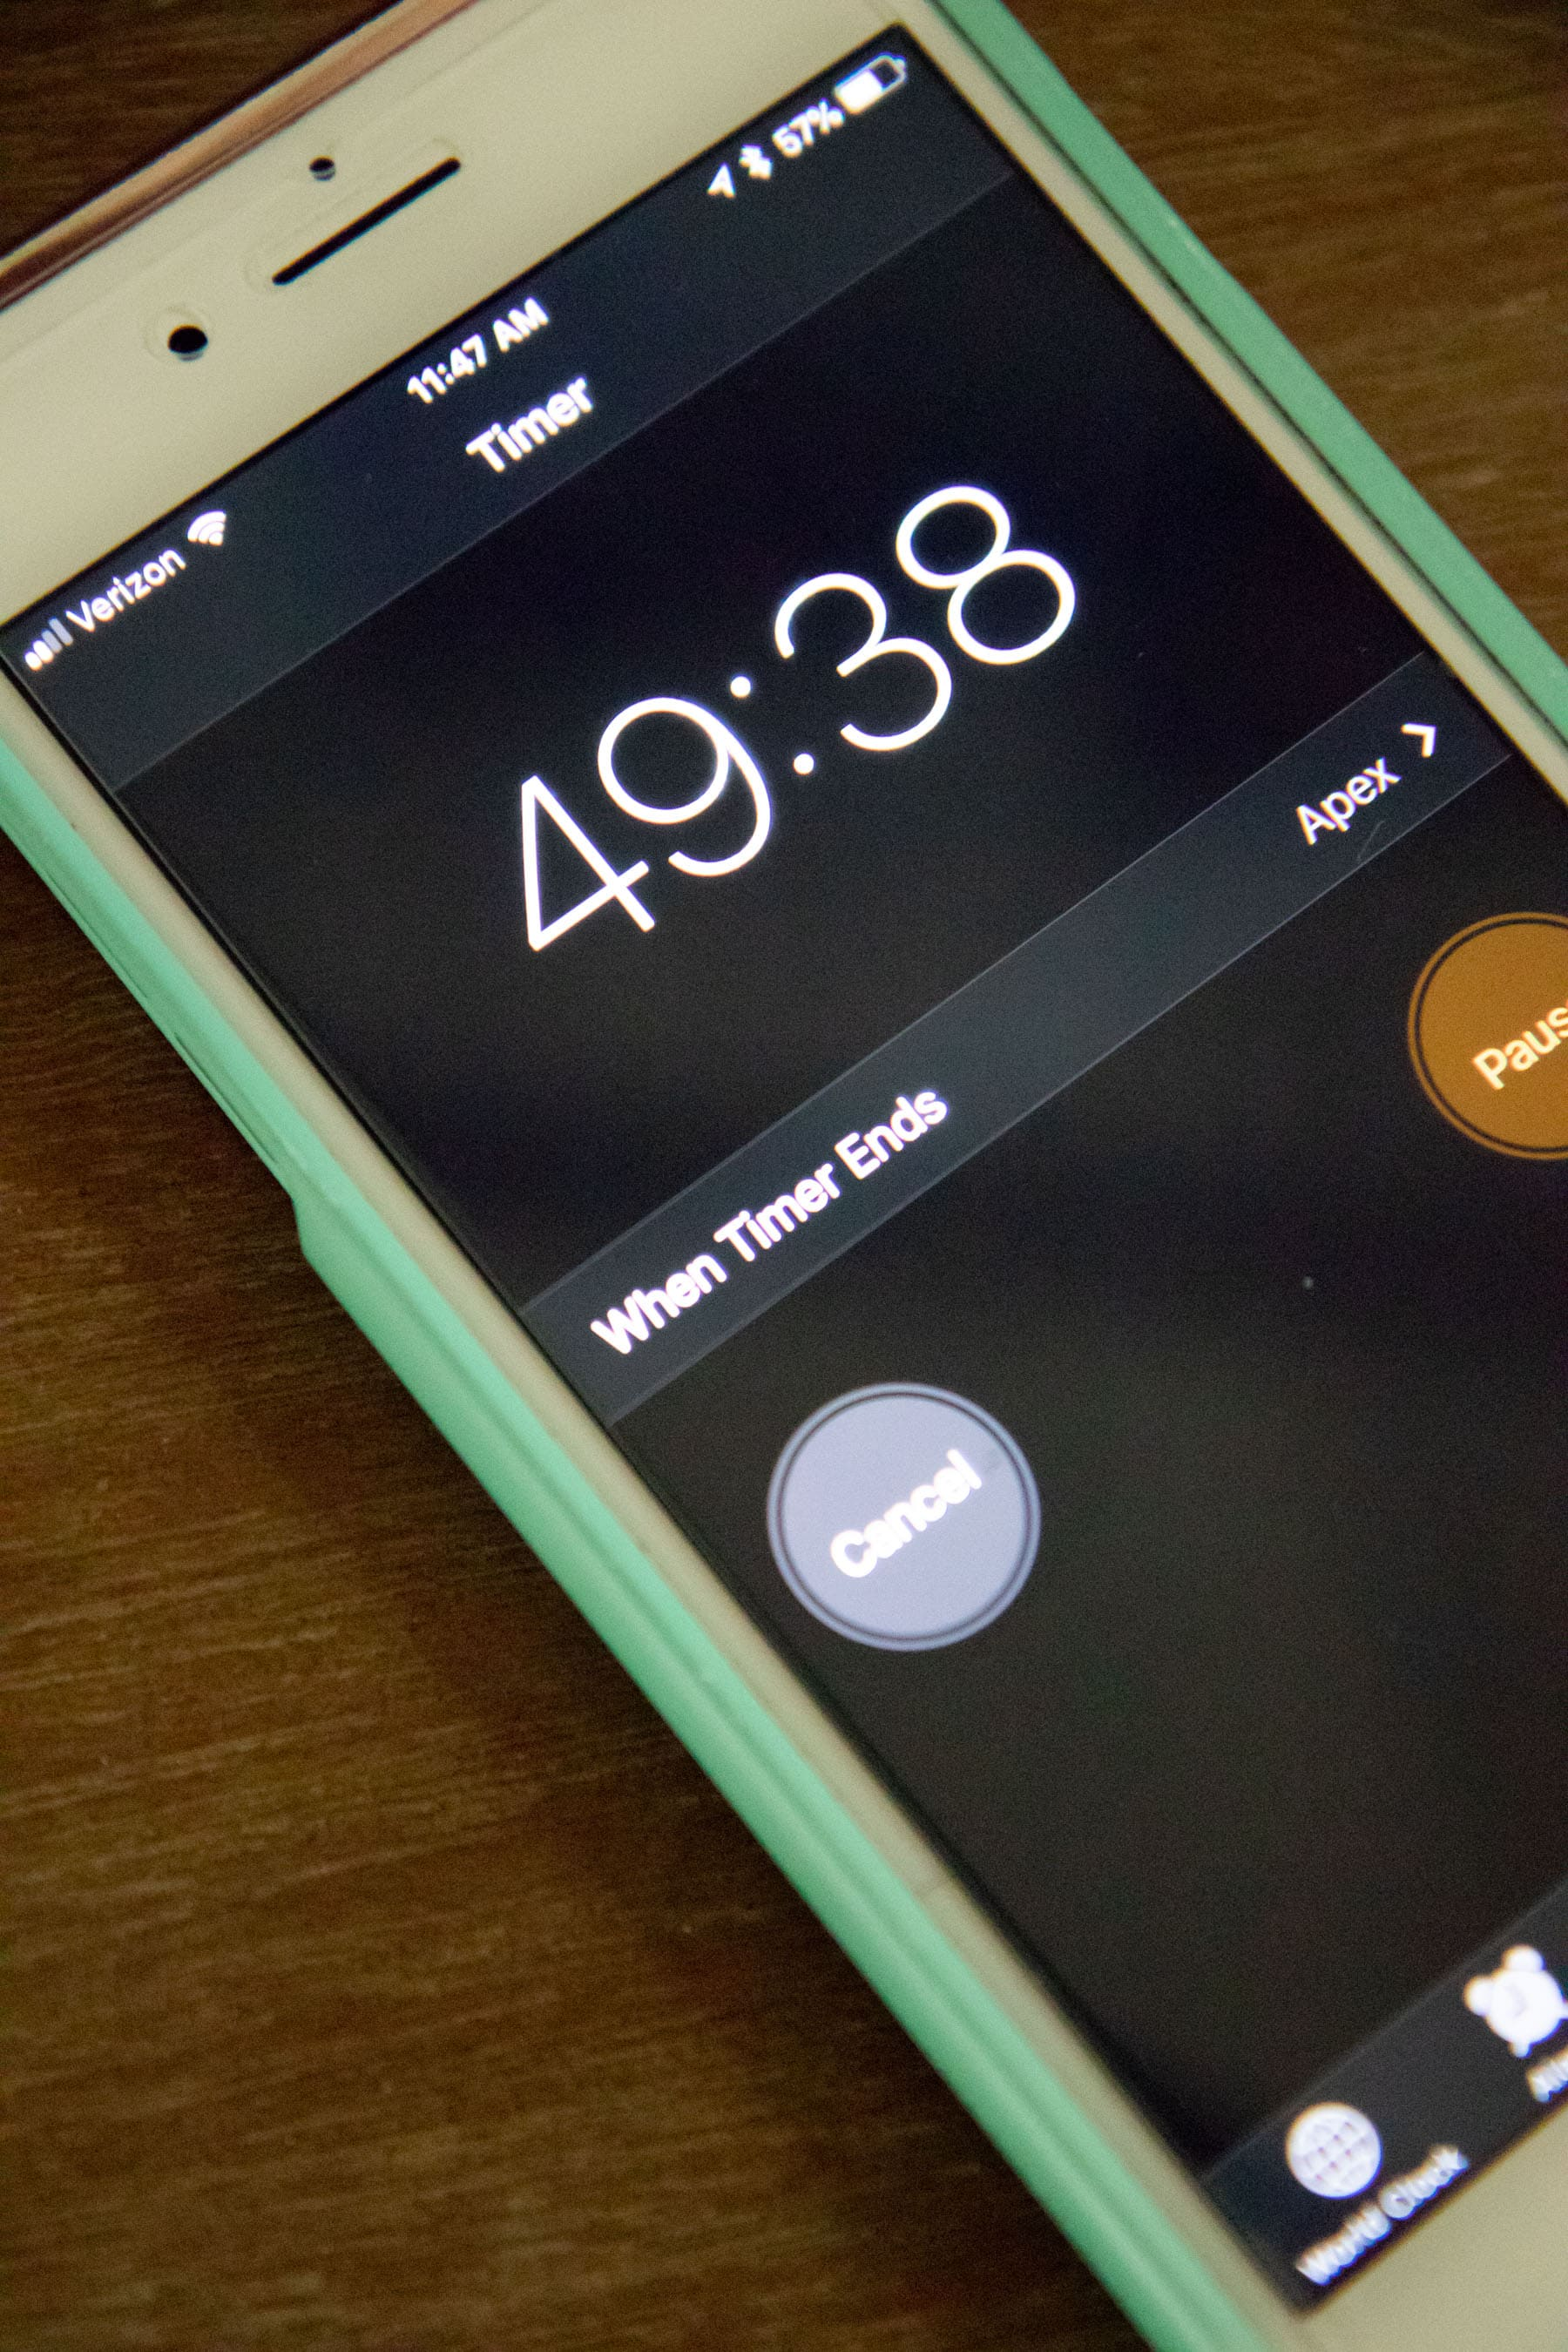 iPhone in a green case showing a timer reading 49:38